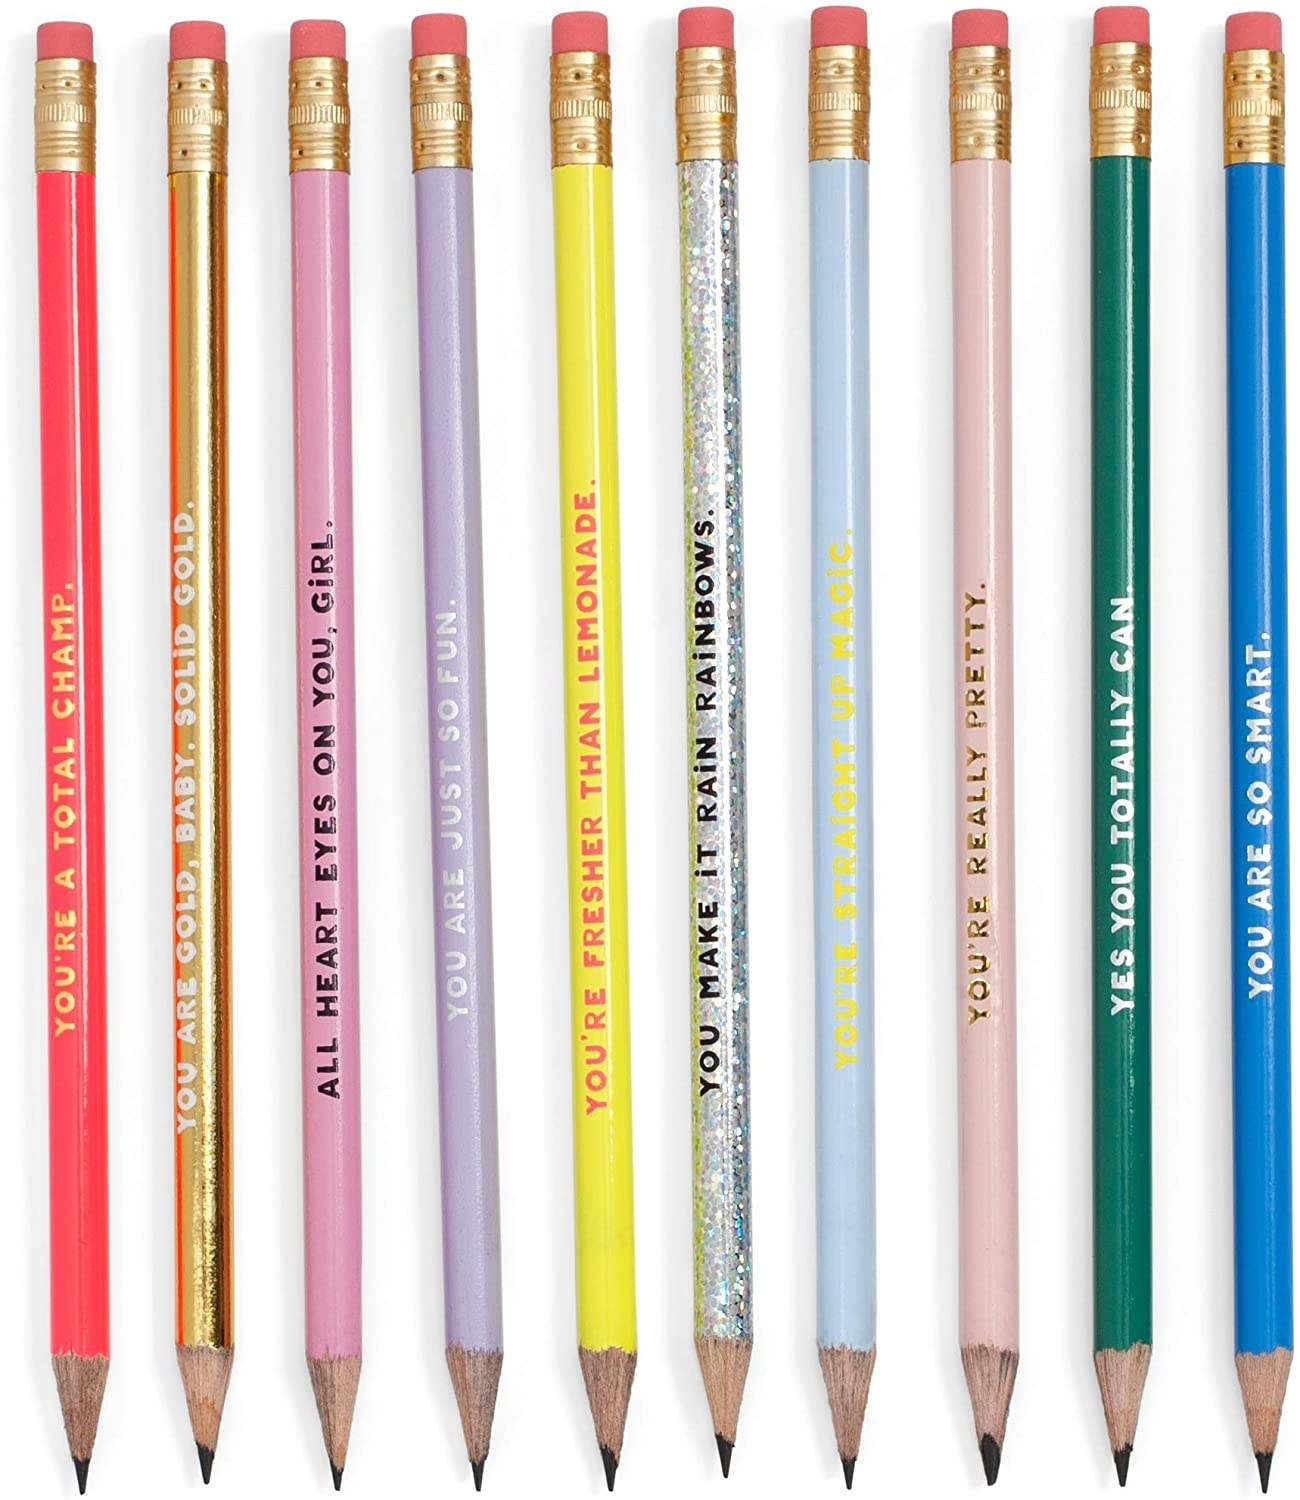 The pencils